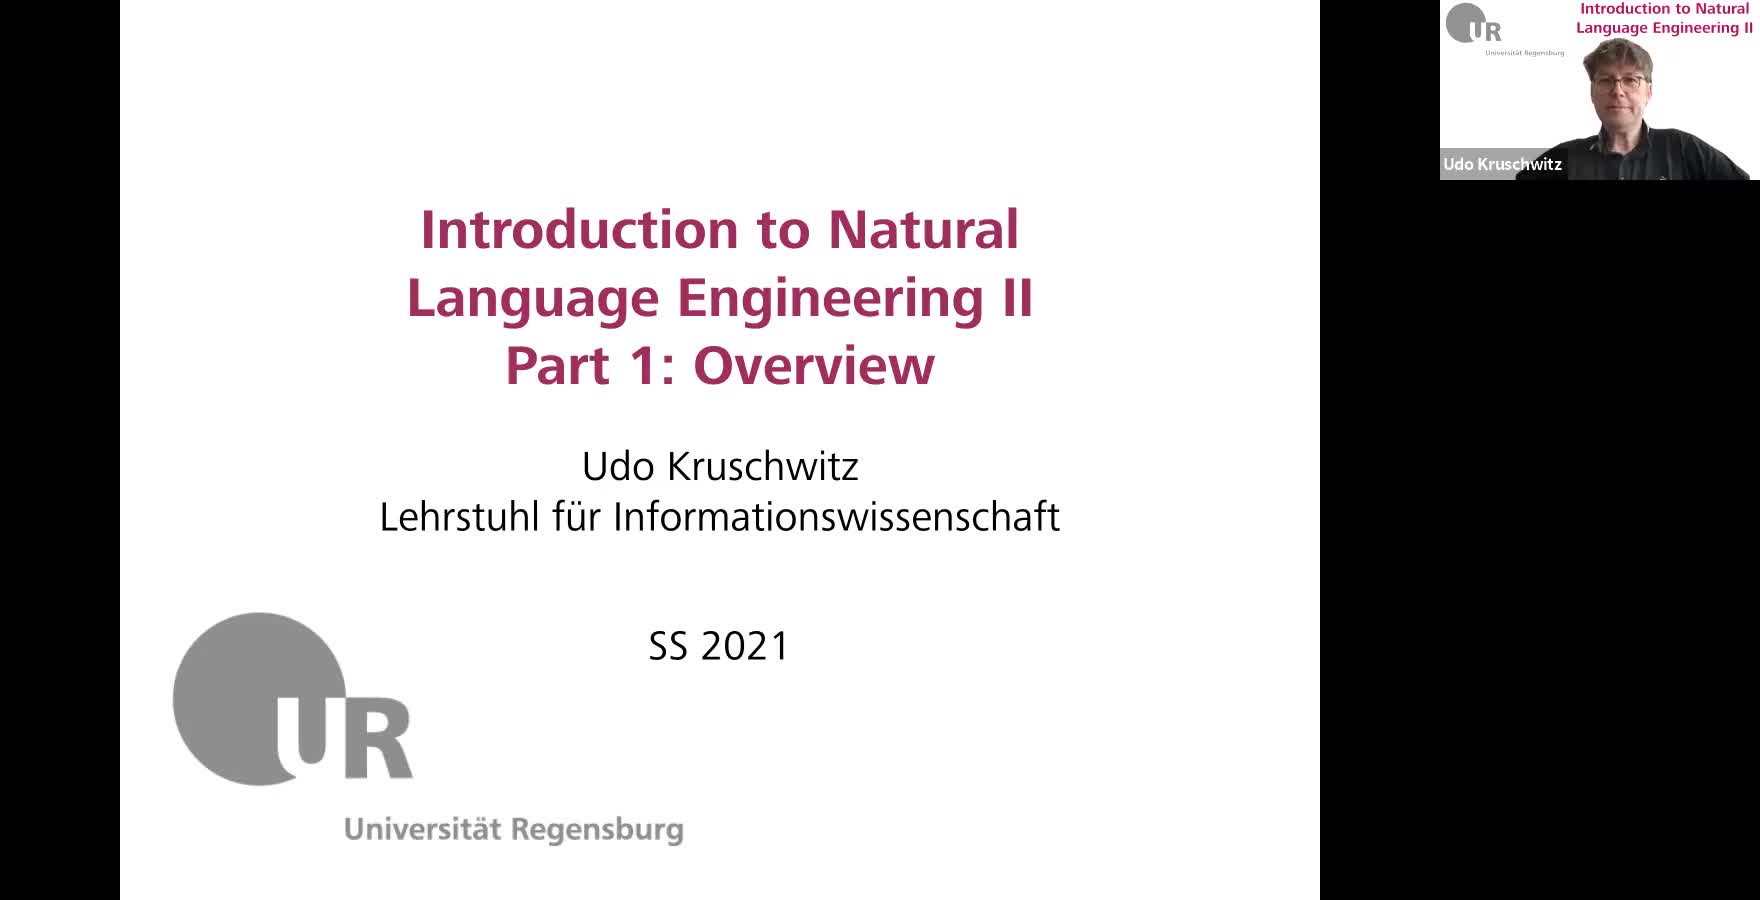 Introduction to Natural Language Engineering 2 / Informationslinguistik 2 - Lecture 1 (Overview)